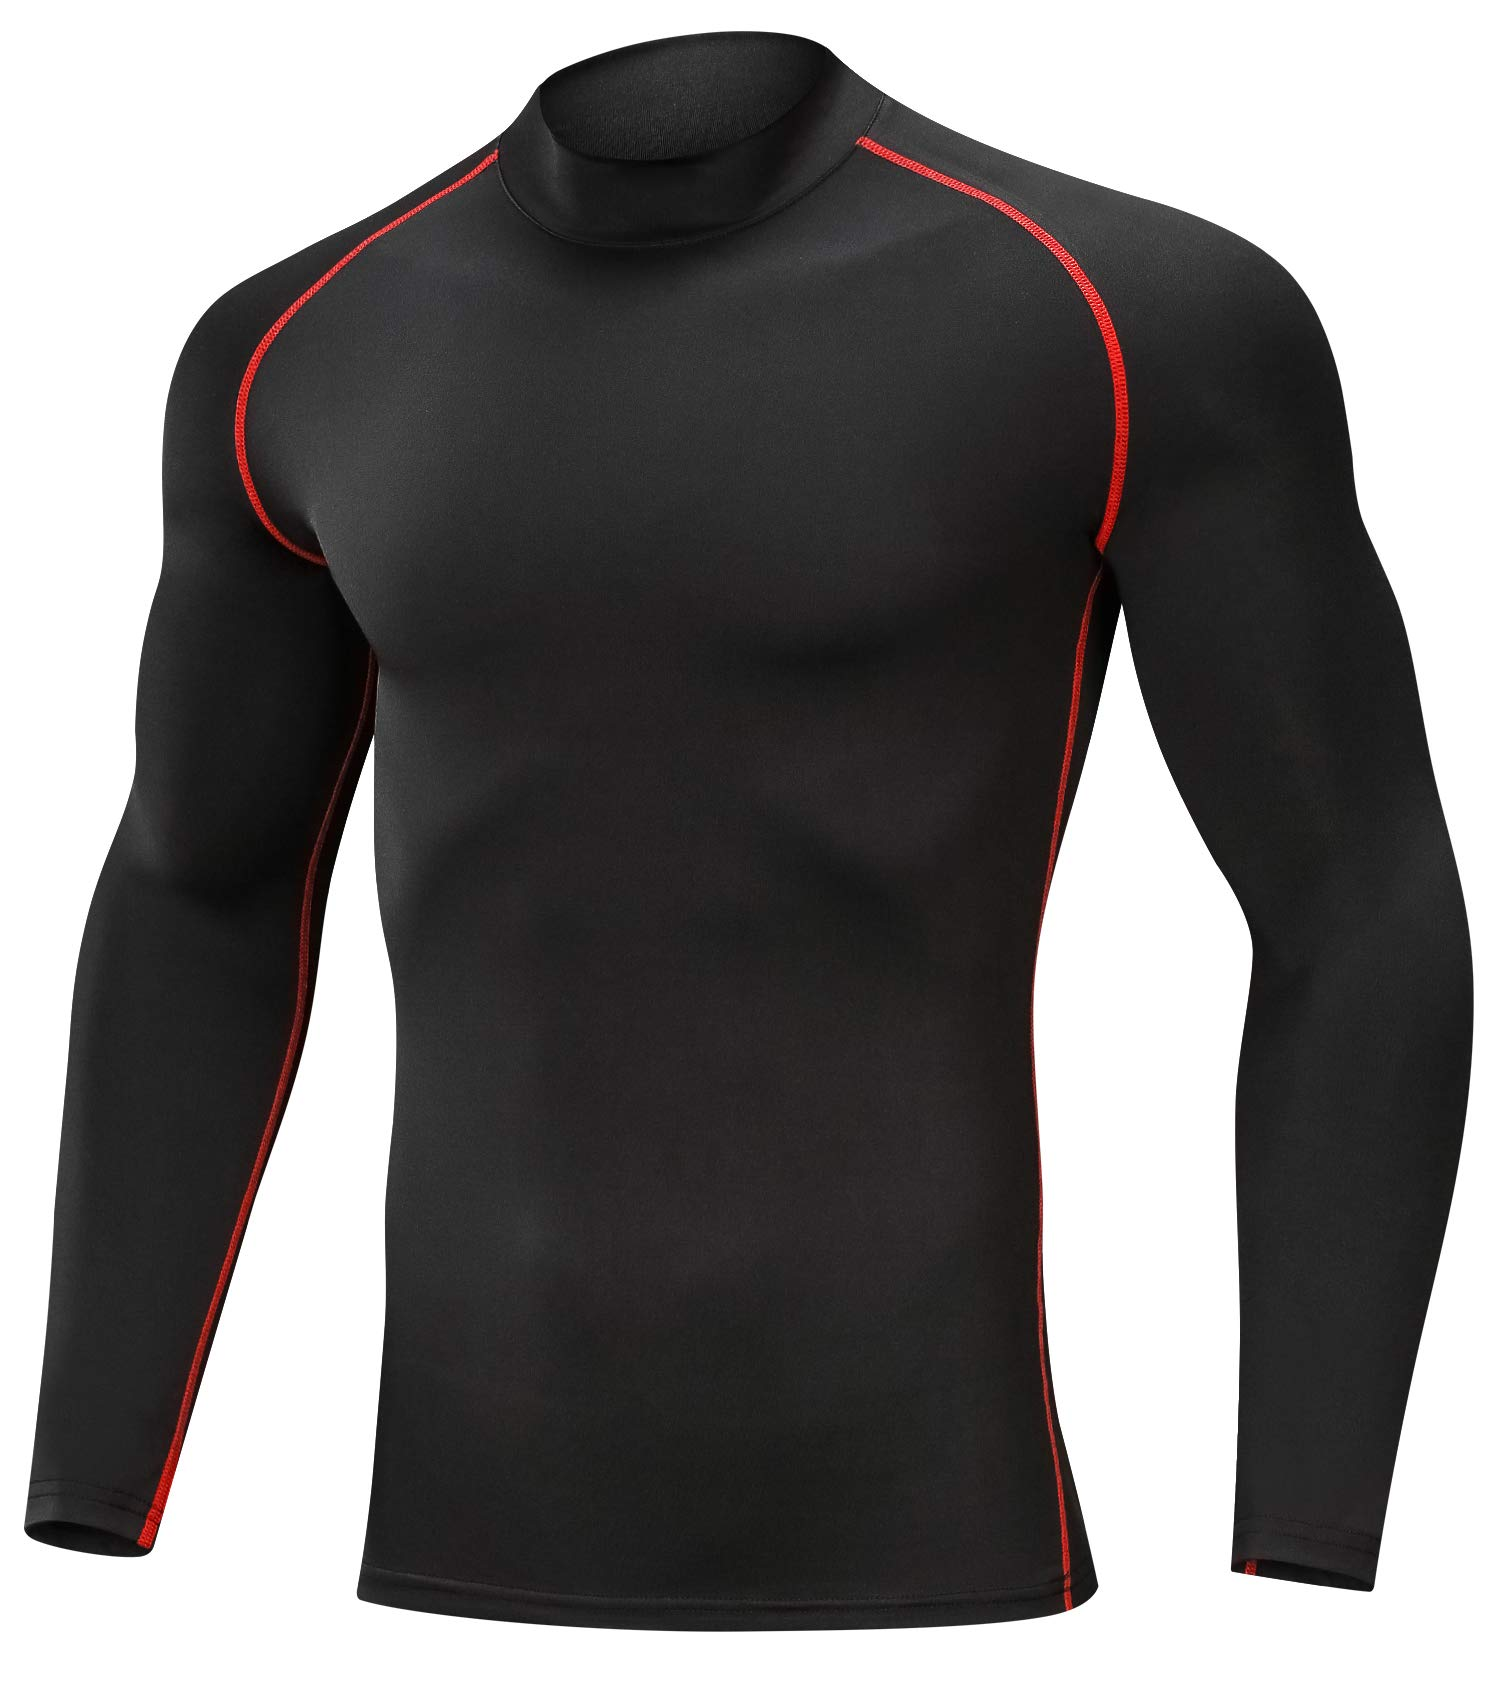 SILKWORLD Men's 3 Pack Compression Shirt Dry Fit Long-Sleeved Sports Baselayer (SW82_1 Piece: Black(Red Stripe), Medium (Fit Chest 32.5''-35''))